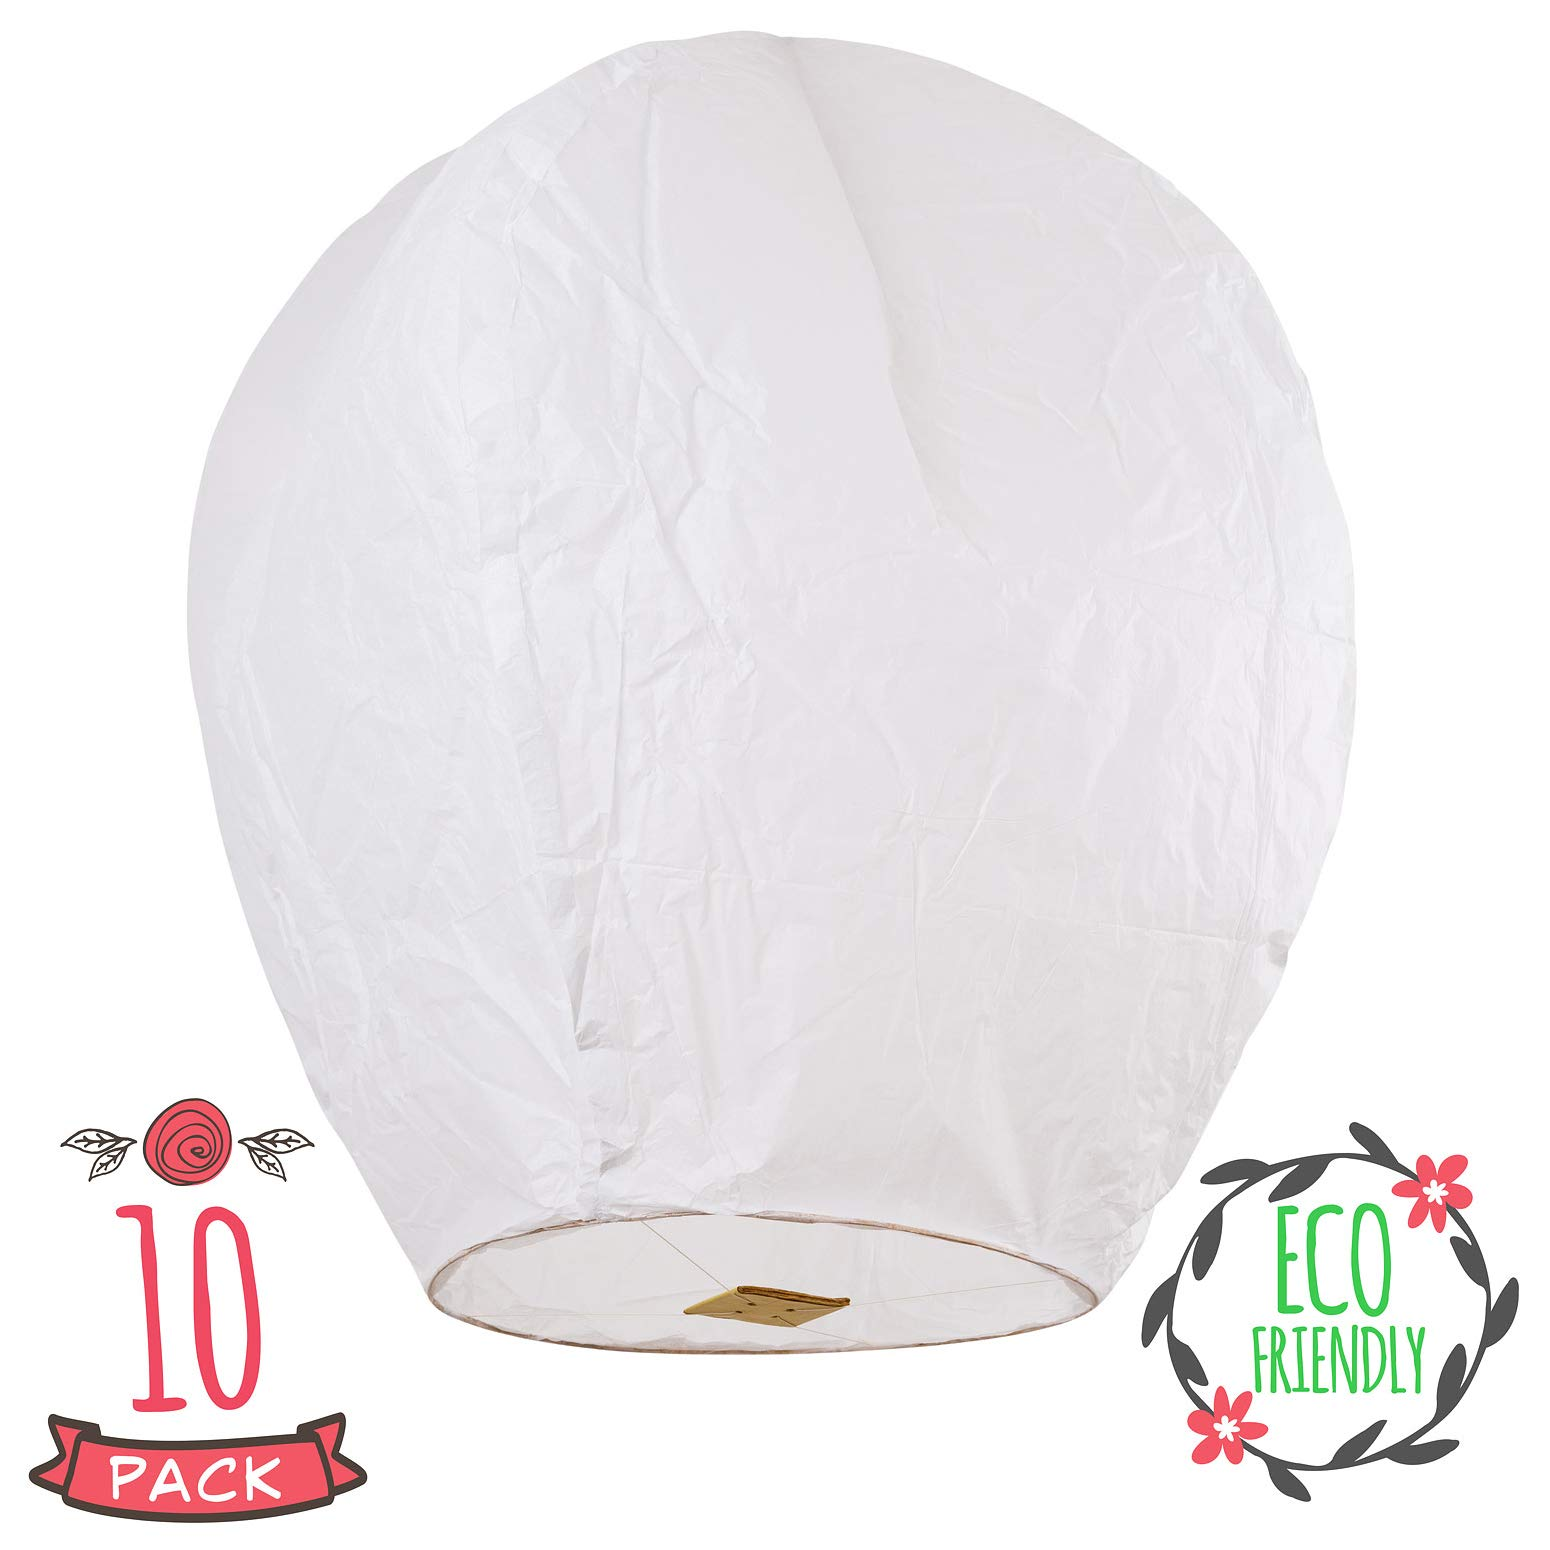 Chinese Lanterns 10-Pack White, Sky High, Fully Assembled, Biodegradable, Sky Lanterns by Coral entertainments for Birthdays, Ceremonies, Weddings. Safe to use and Flame Retardant Paper (White) by SKY HIGH